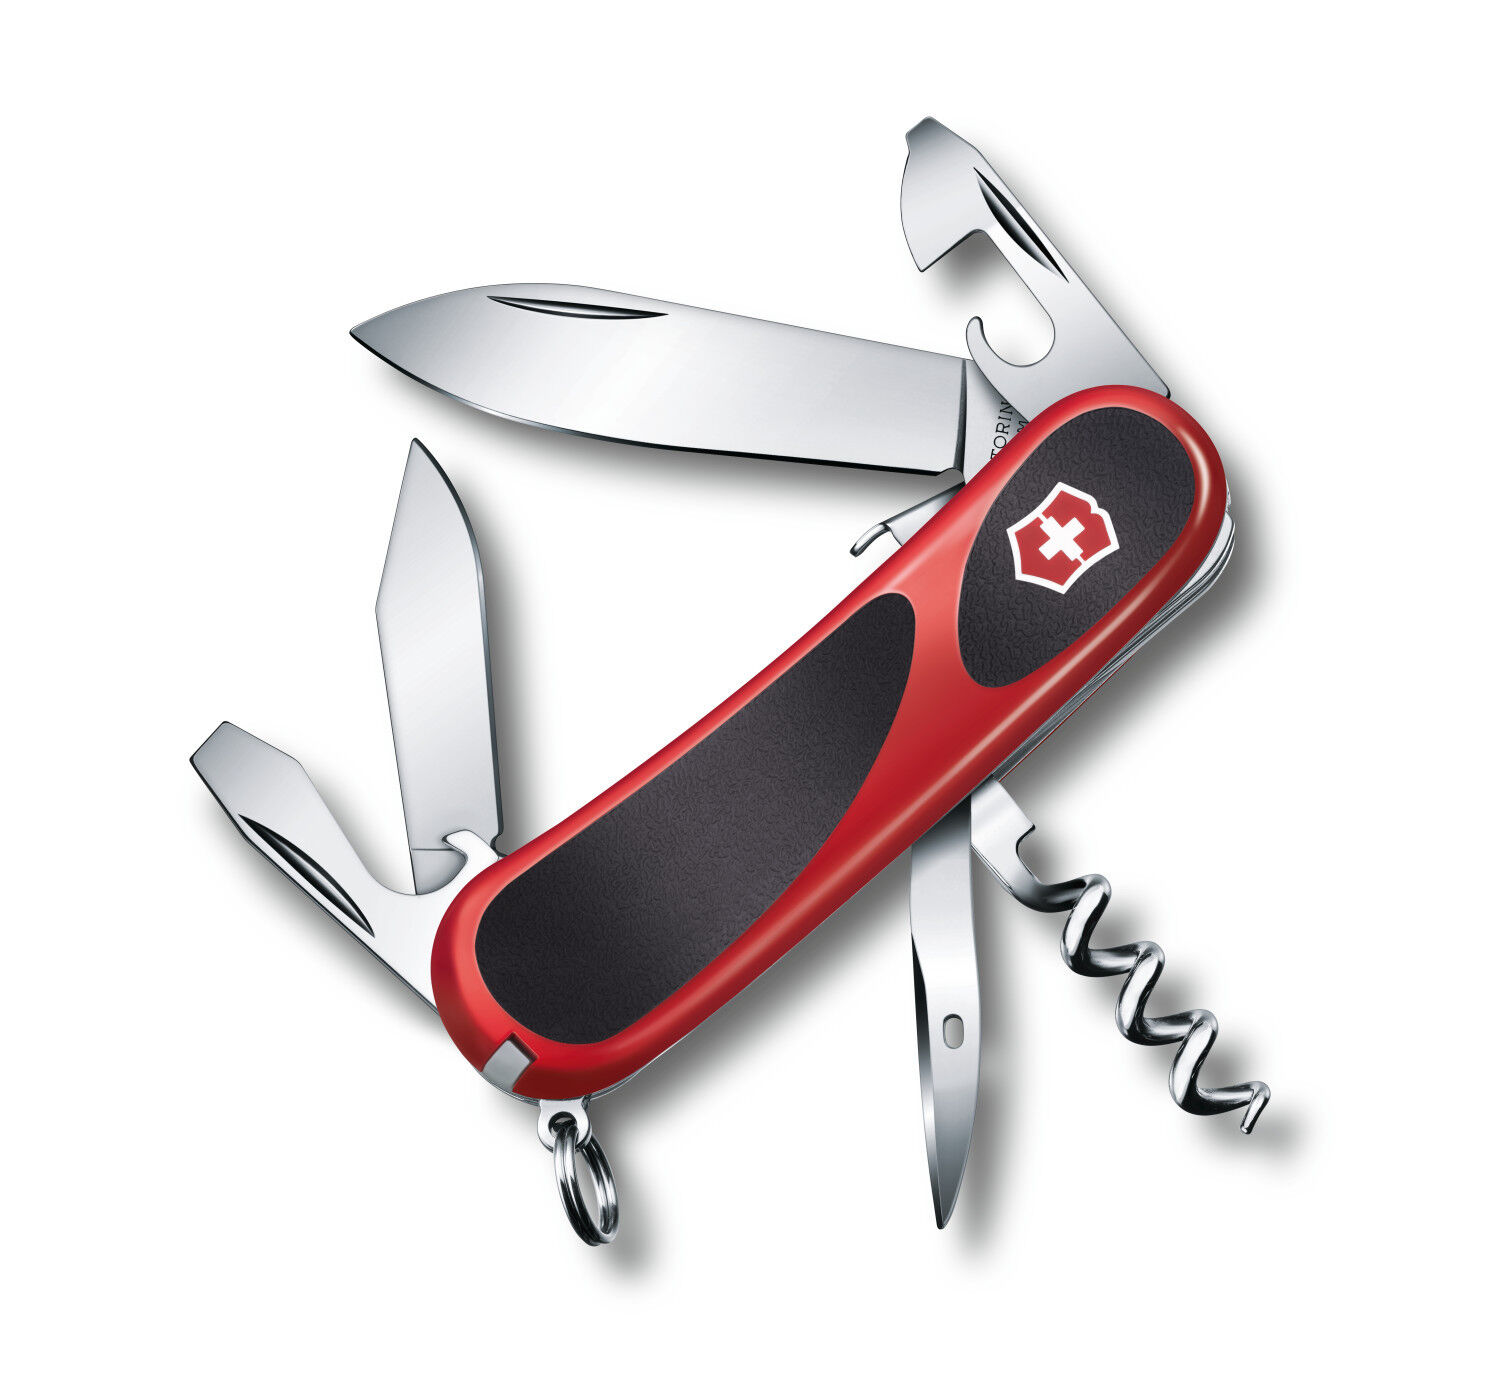 Victorinox  swiss army knife evogrip security 101 12 tools 2.3603.sc delemont  best service